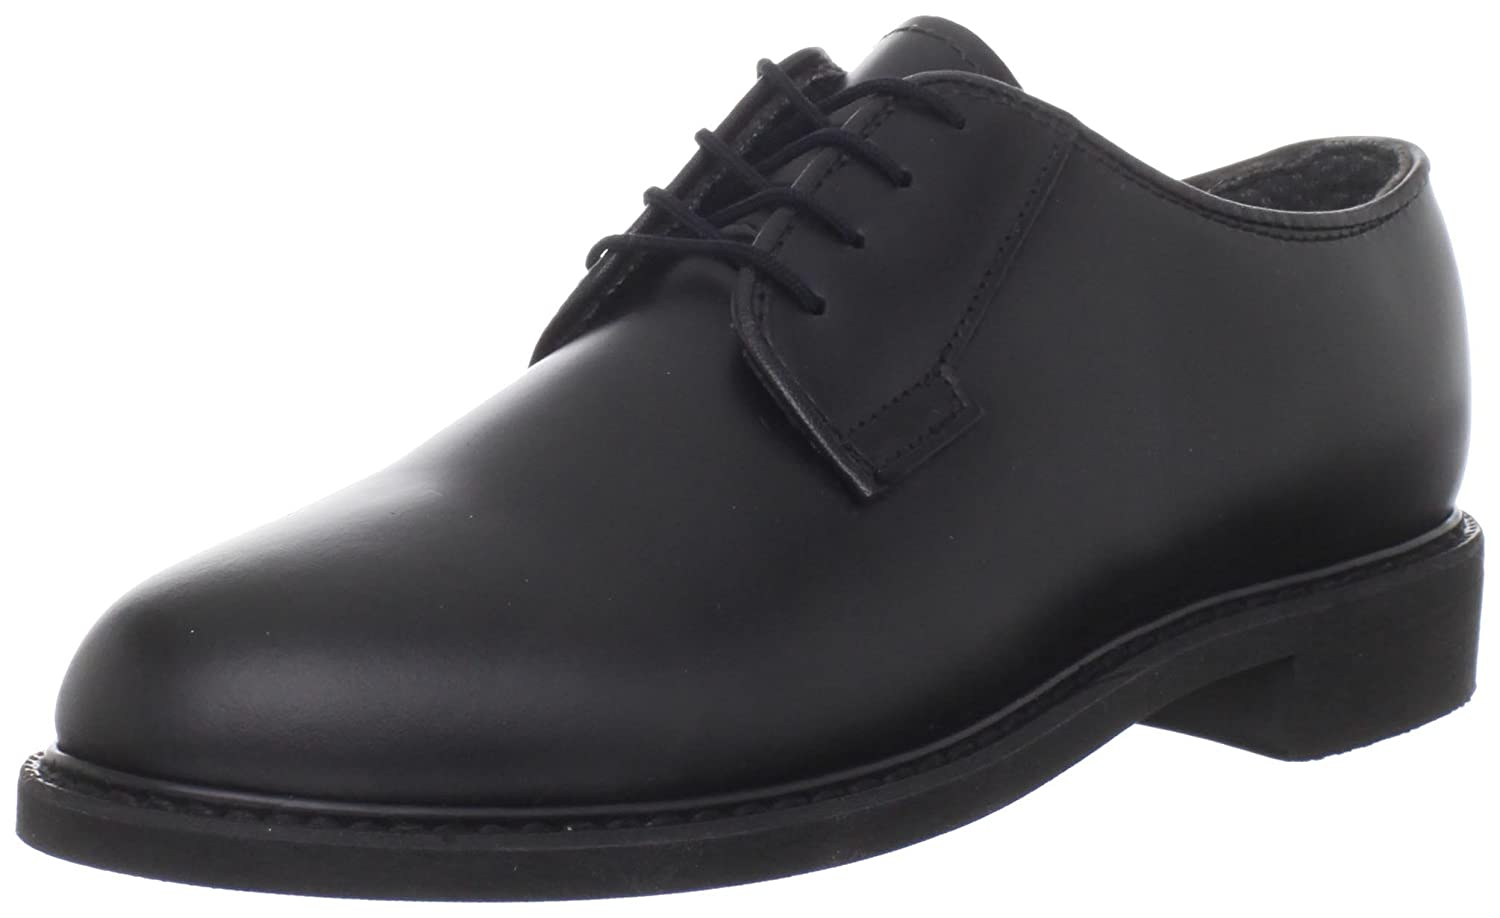 Bates Women's Leather Uniform Shoe B000GSTPQ6 6 XW US|Black